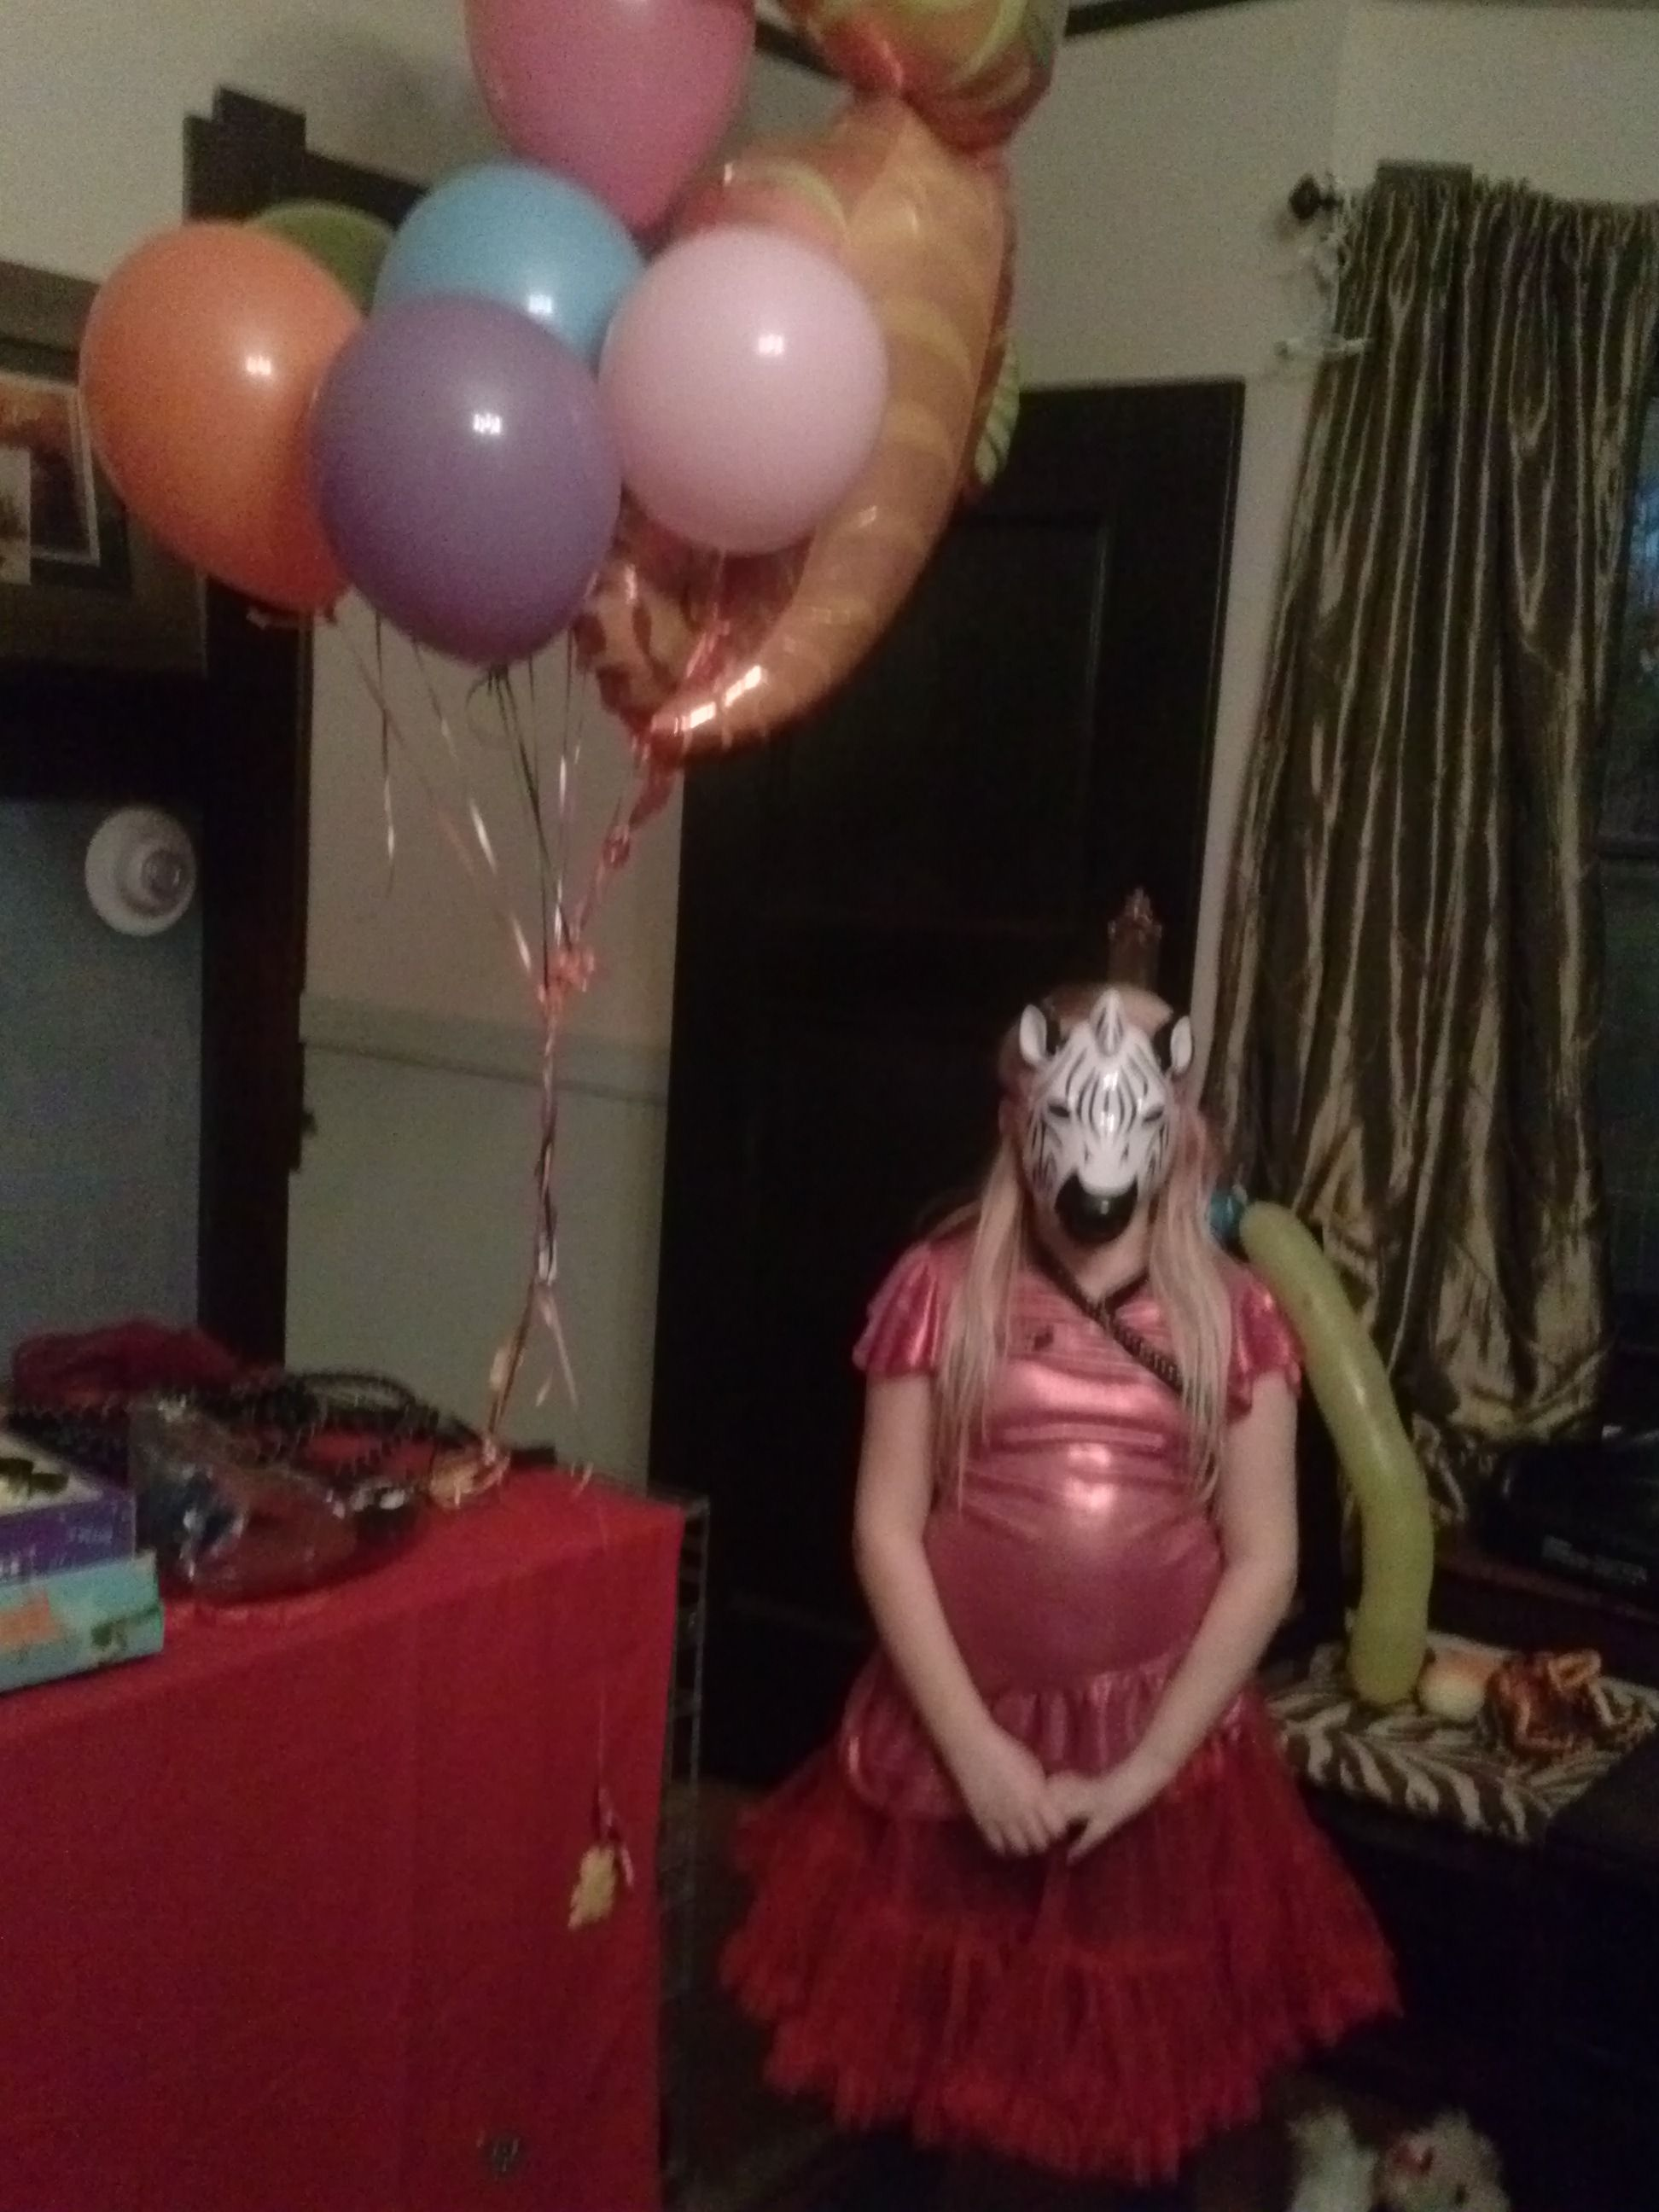 circus friend with balloons